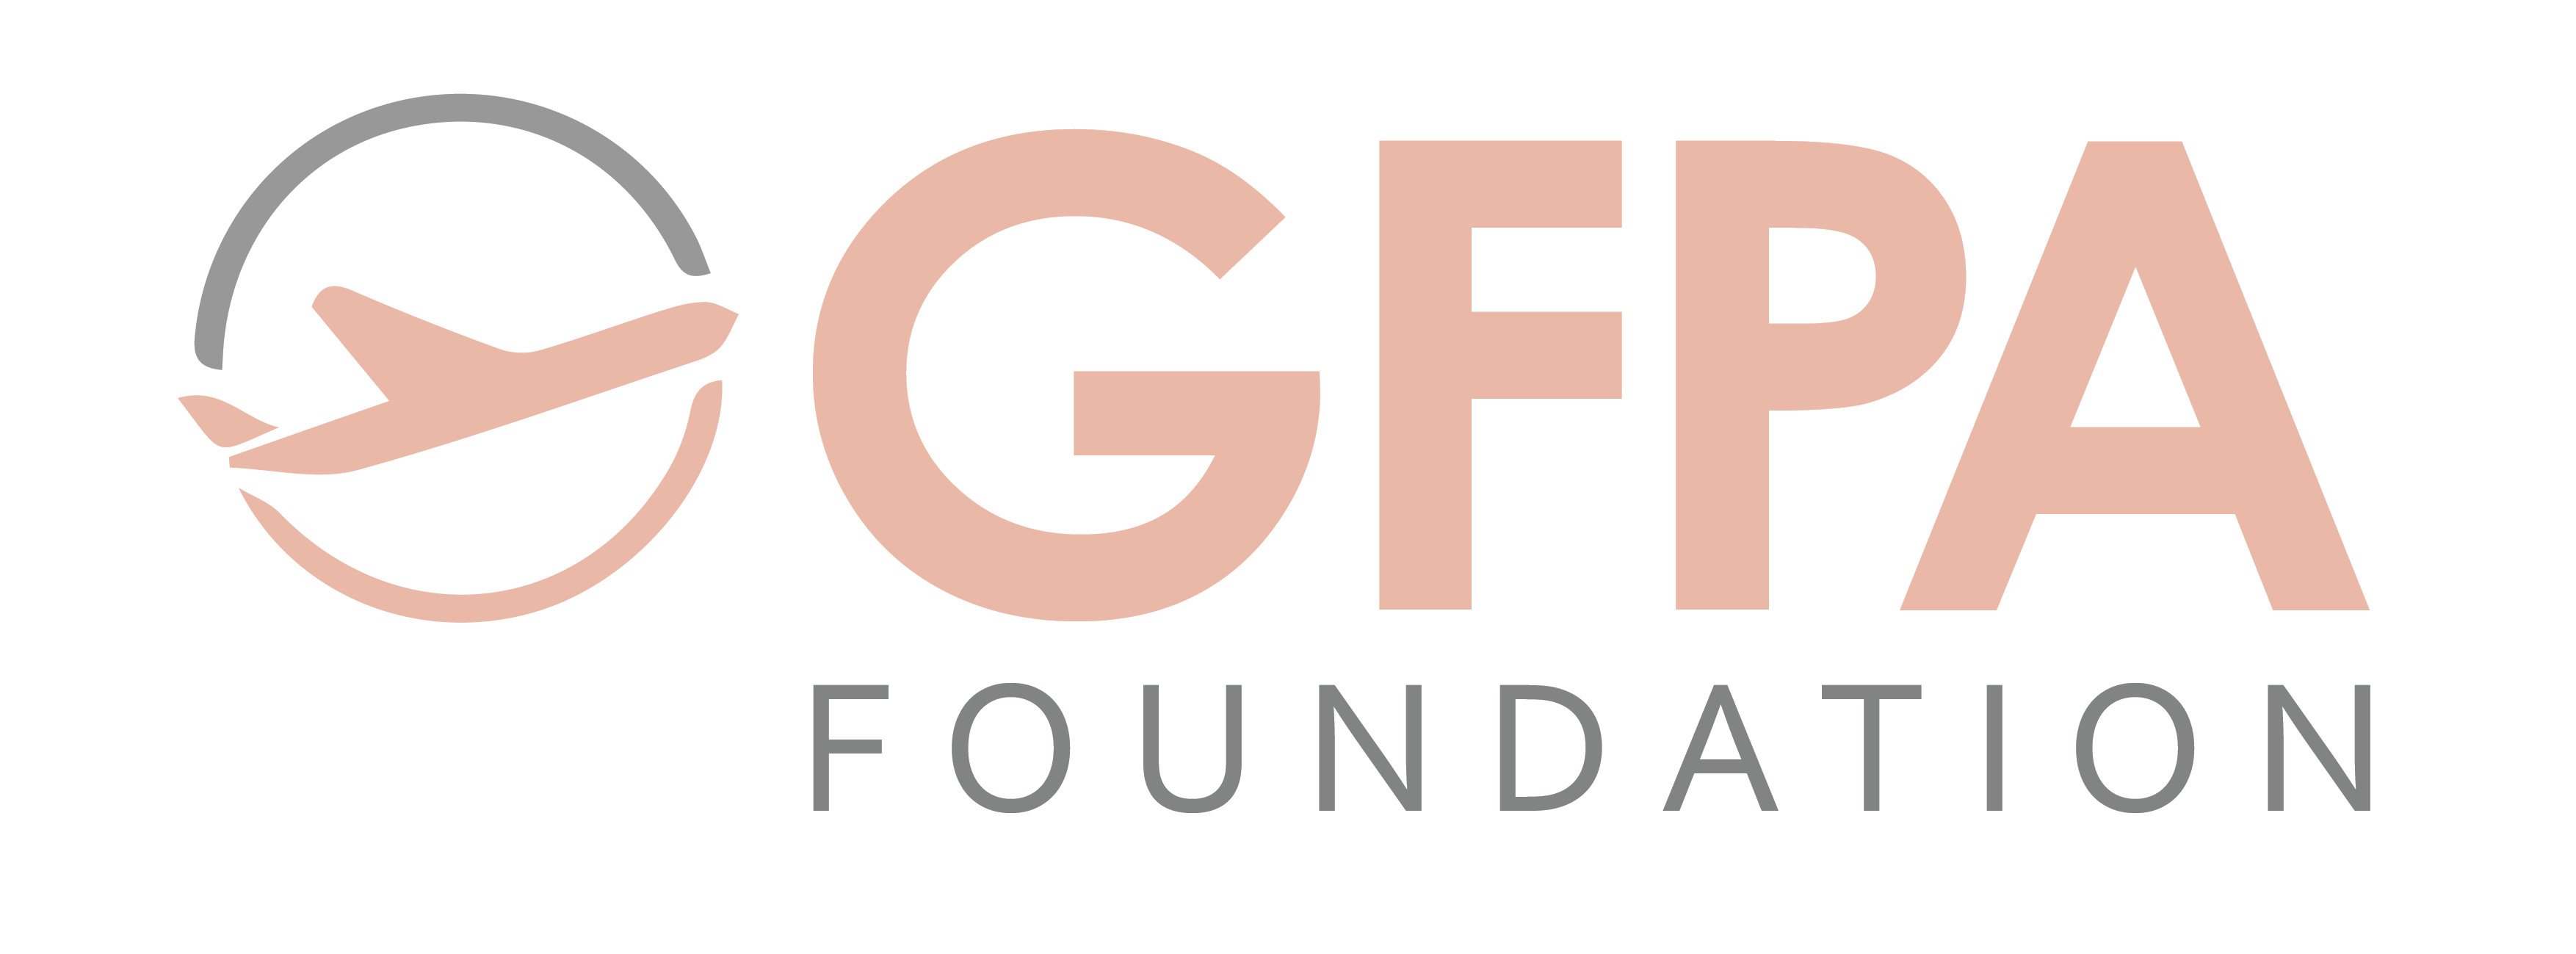 Girls Fly Programme in Africa (GFPA) Foundation